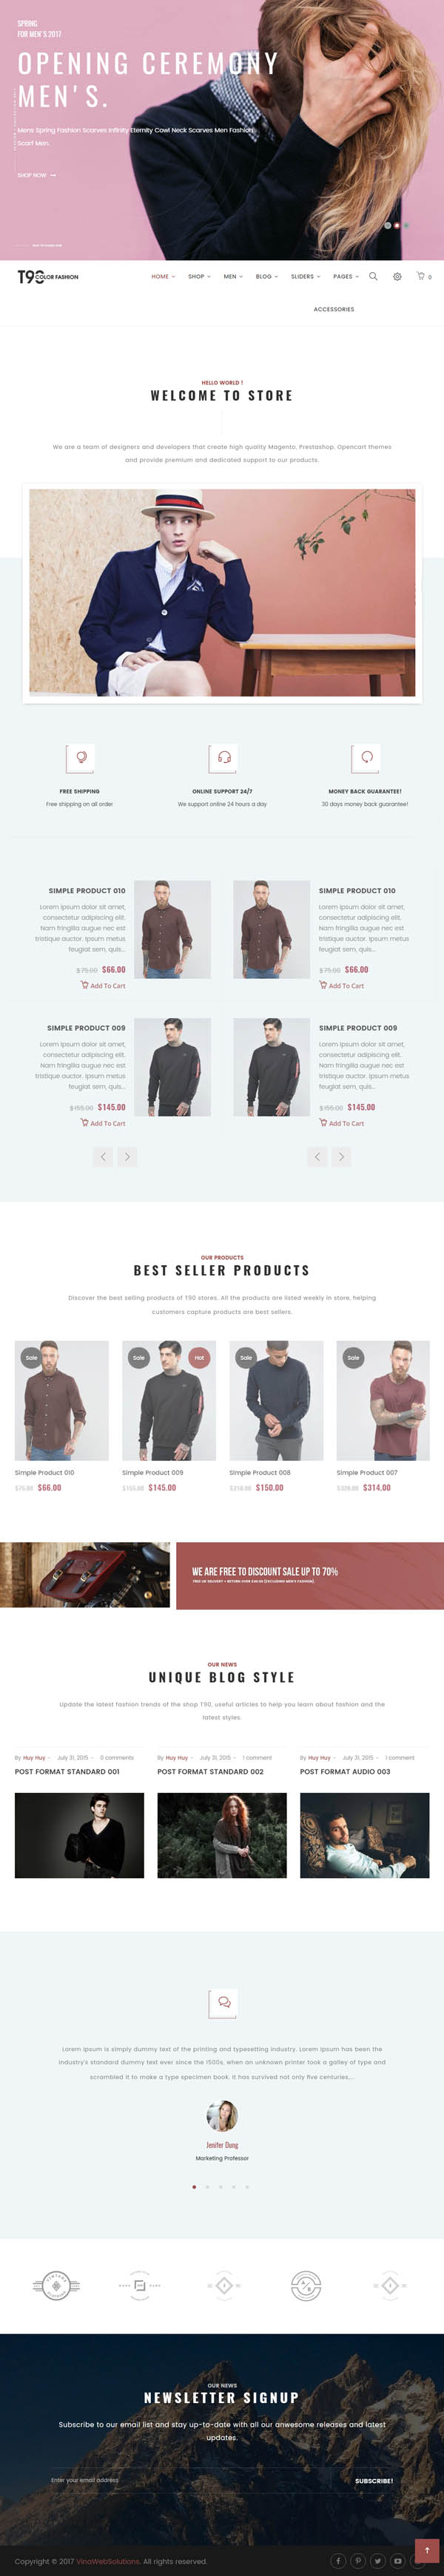 VG T90 : Clean, Minimalist WooCommerce WordPress Theme